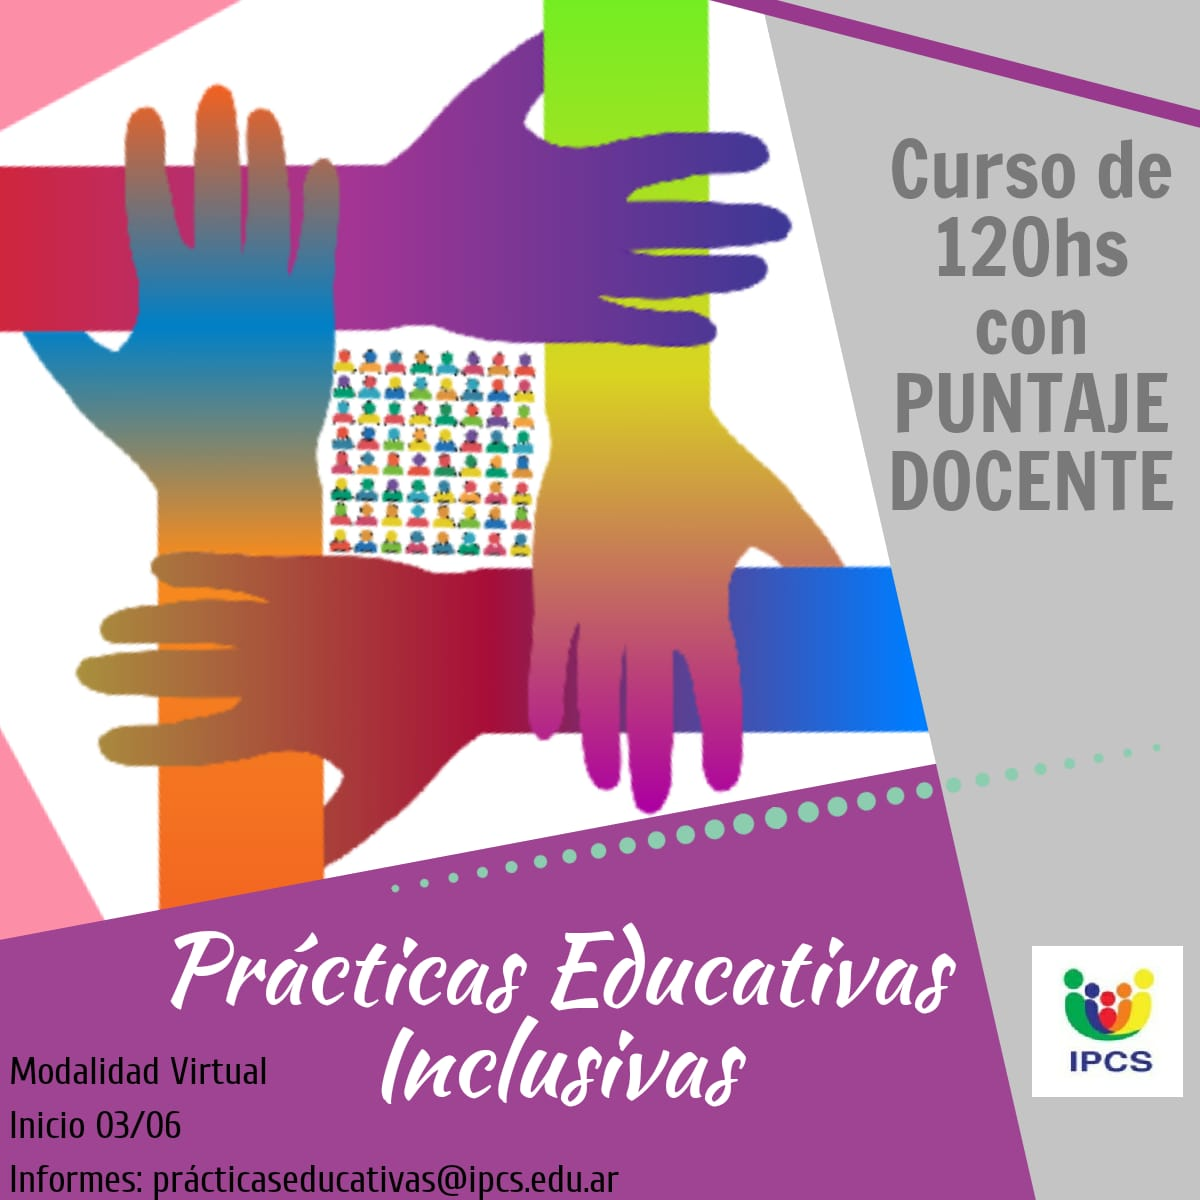 Flyer practicas educativas